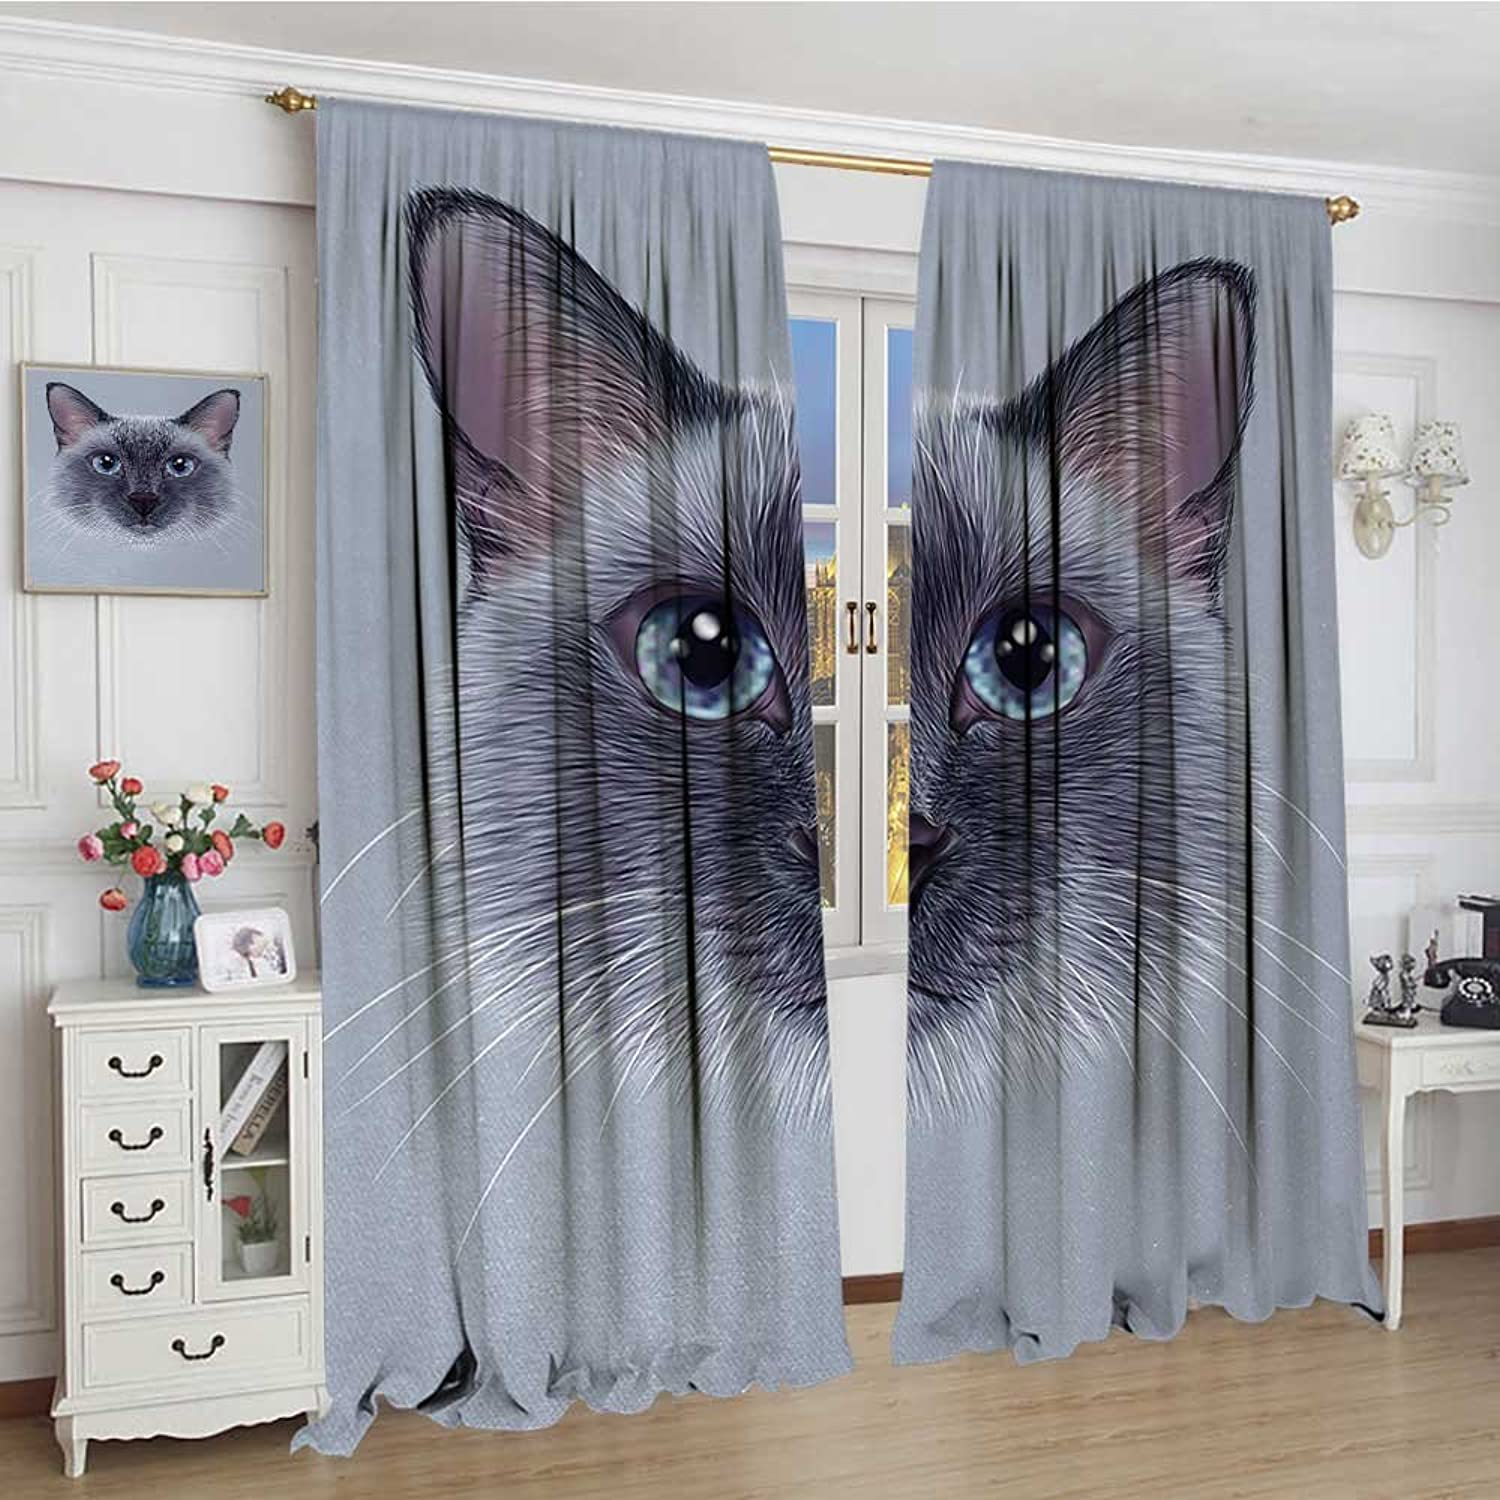 Animal Thermal Insulating Blackout Curtain Portrait Image of Thai Siamese Cat with Retro Style Lettering Artwork Patterned Drape for Glass Door 72 x96  White Sky bluee and Grey